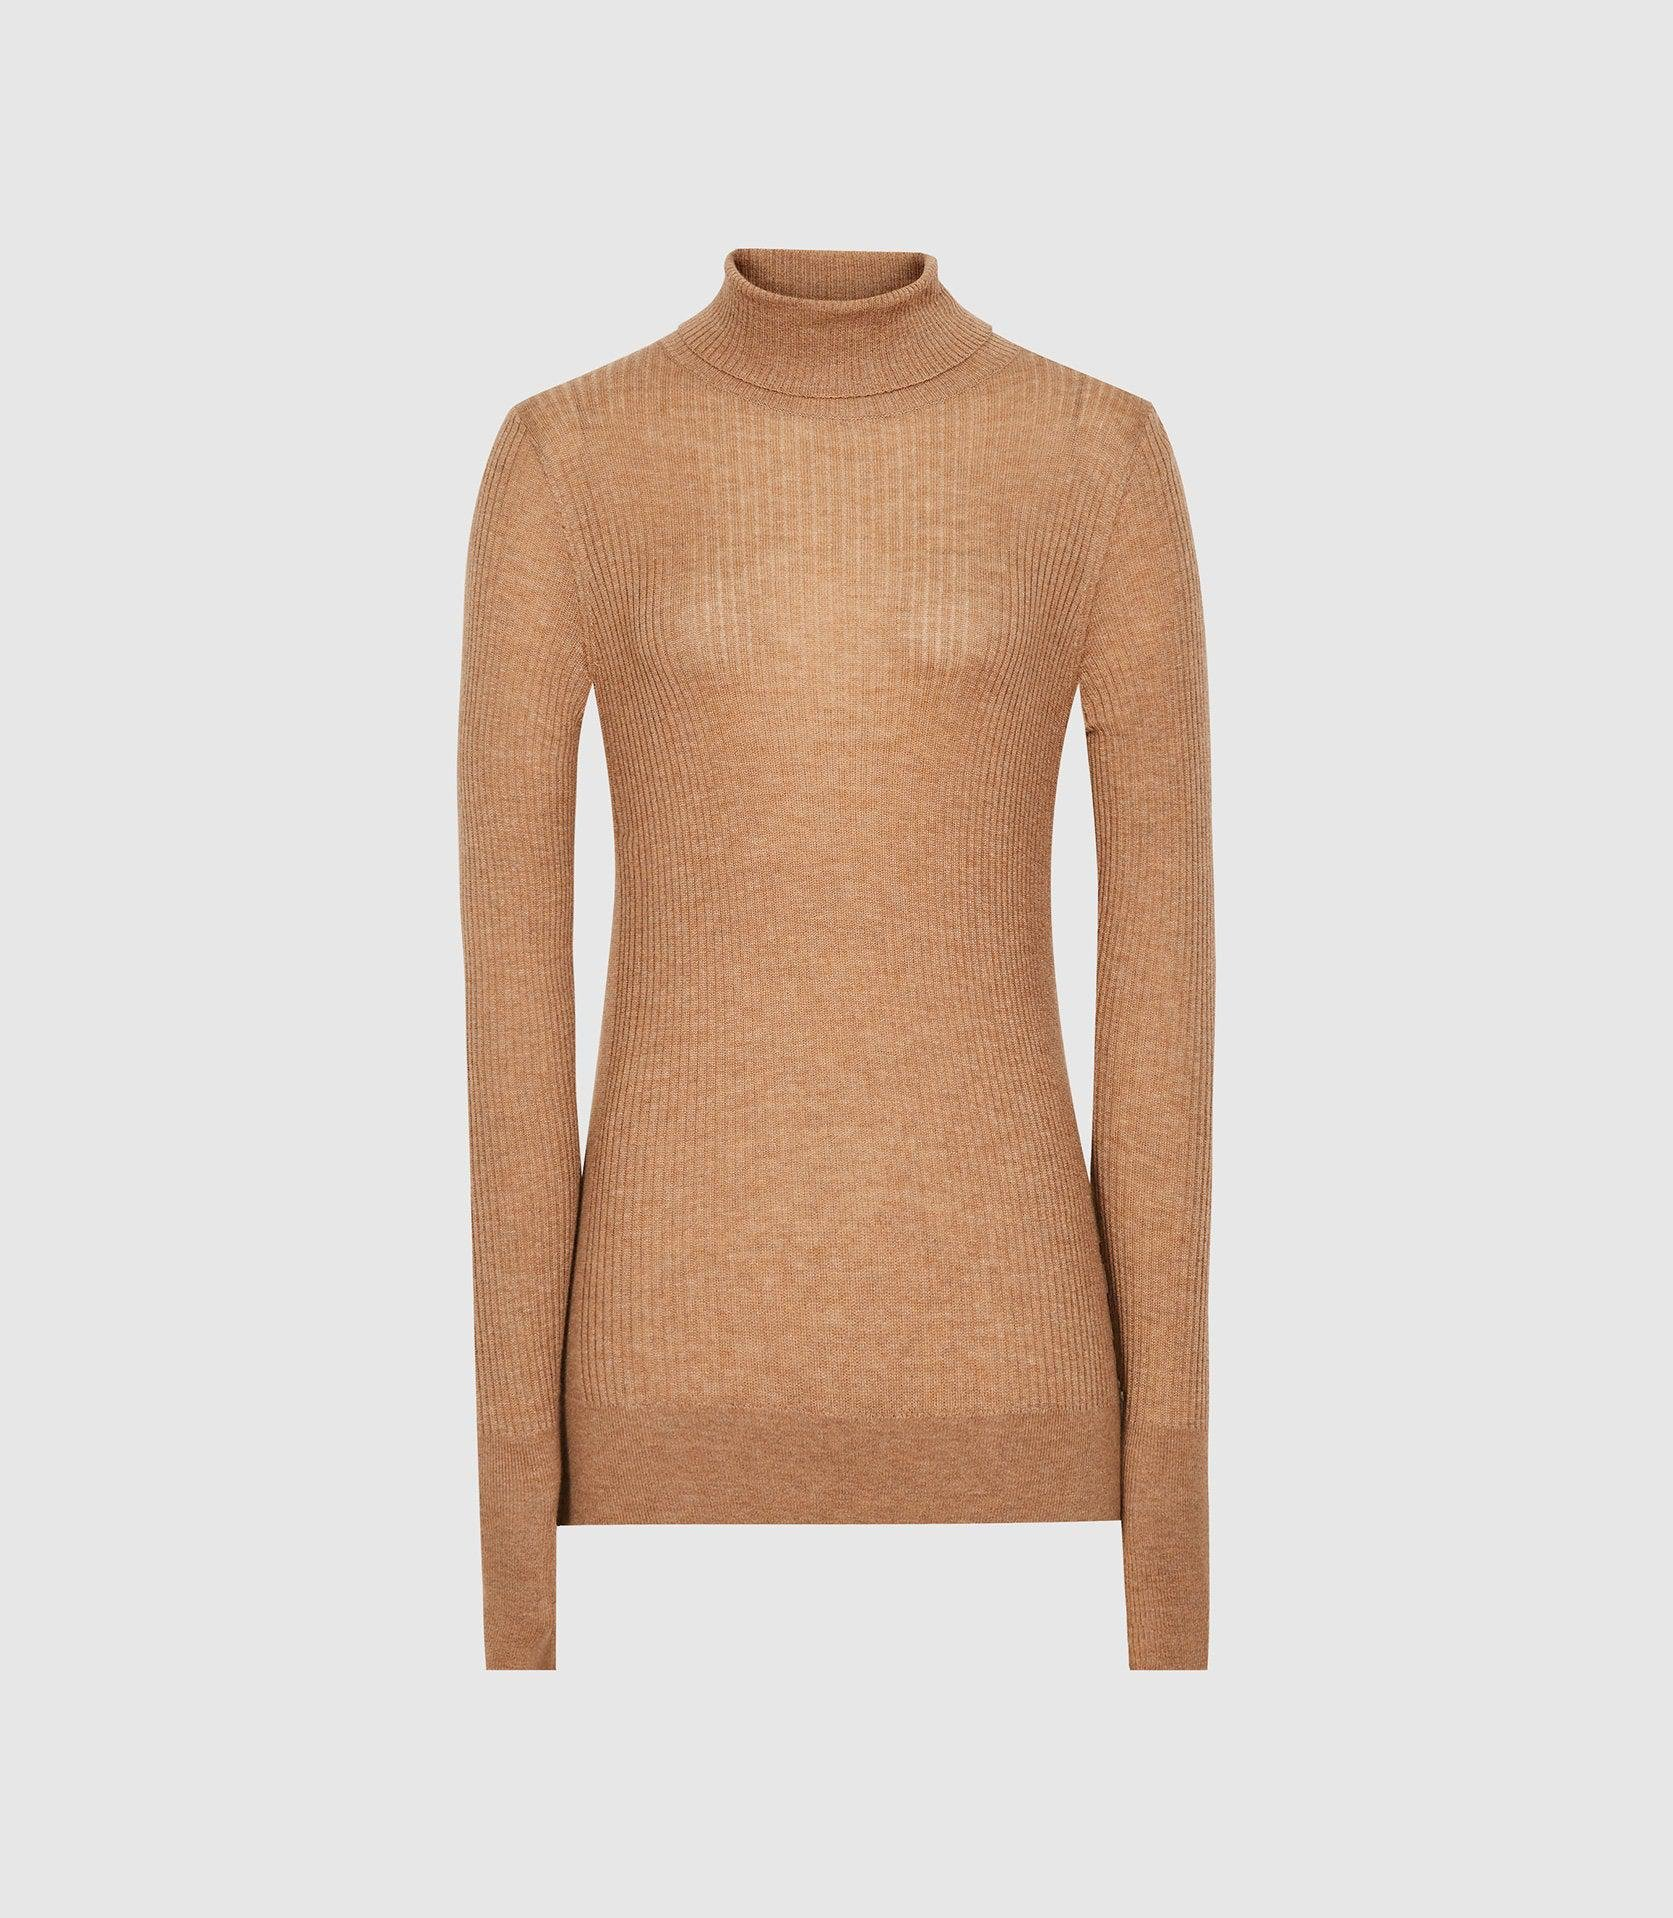 SOPHIE - KNITTED ROLL NECK TOP 3